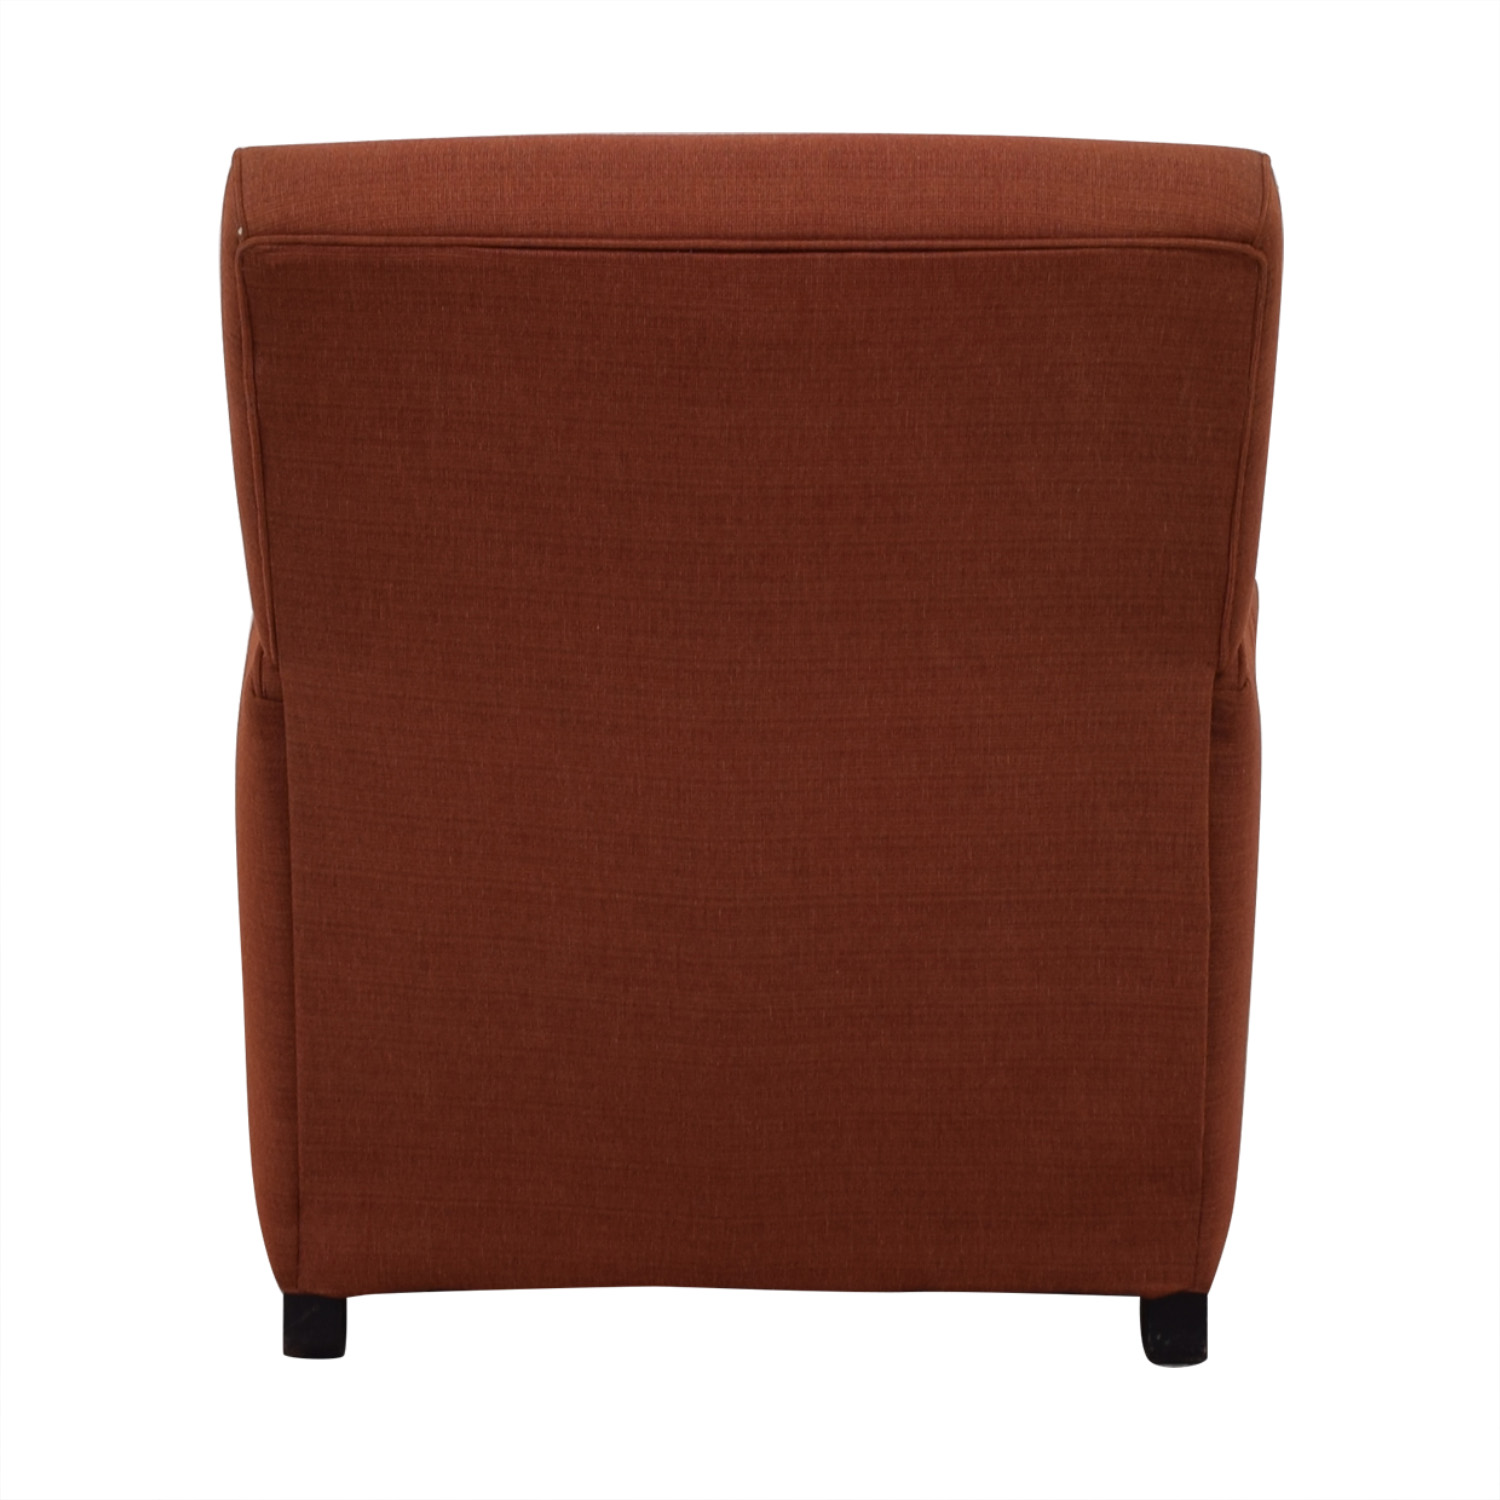 Mitchell Gold + Bob Williams Mitchell Gold + Bob Williams Recliner Chair red